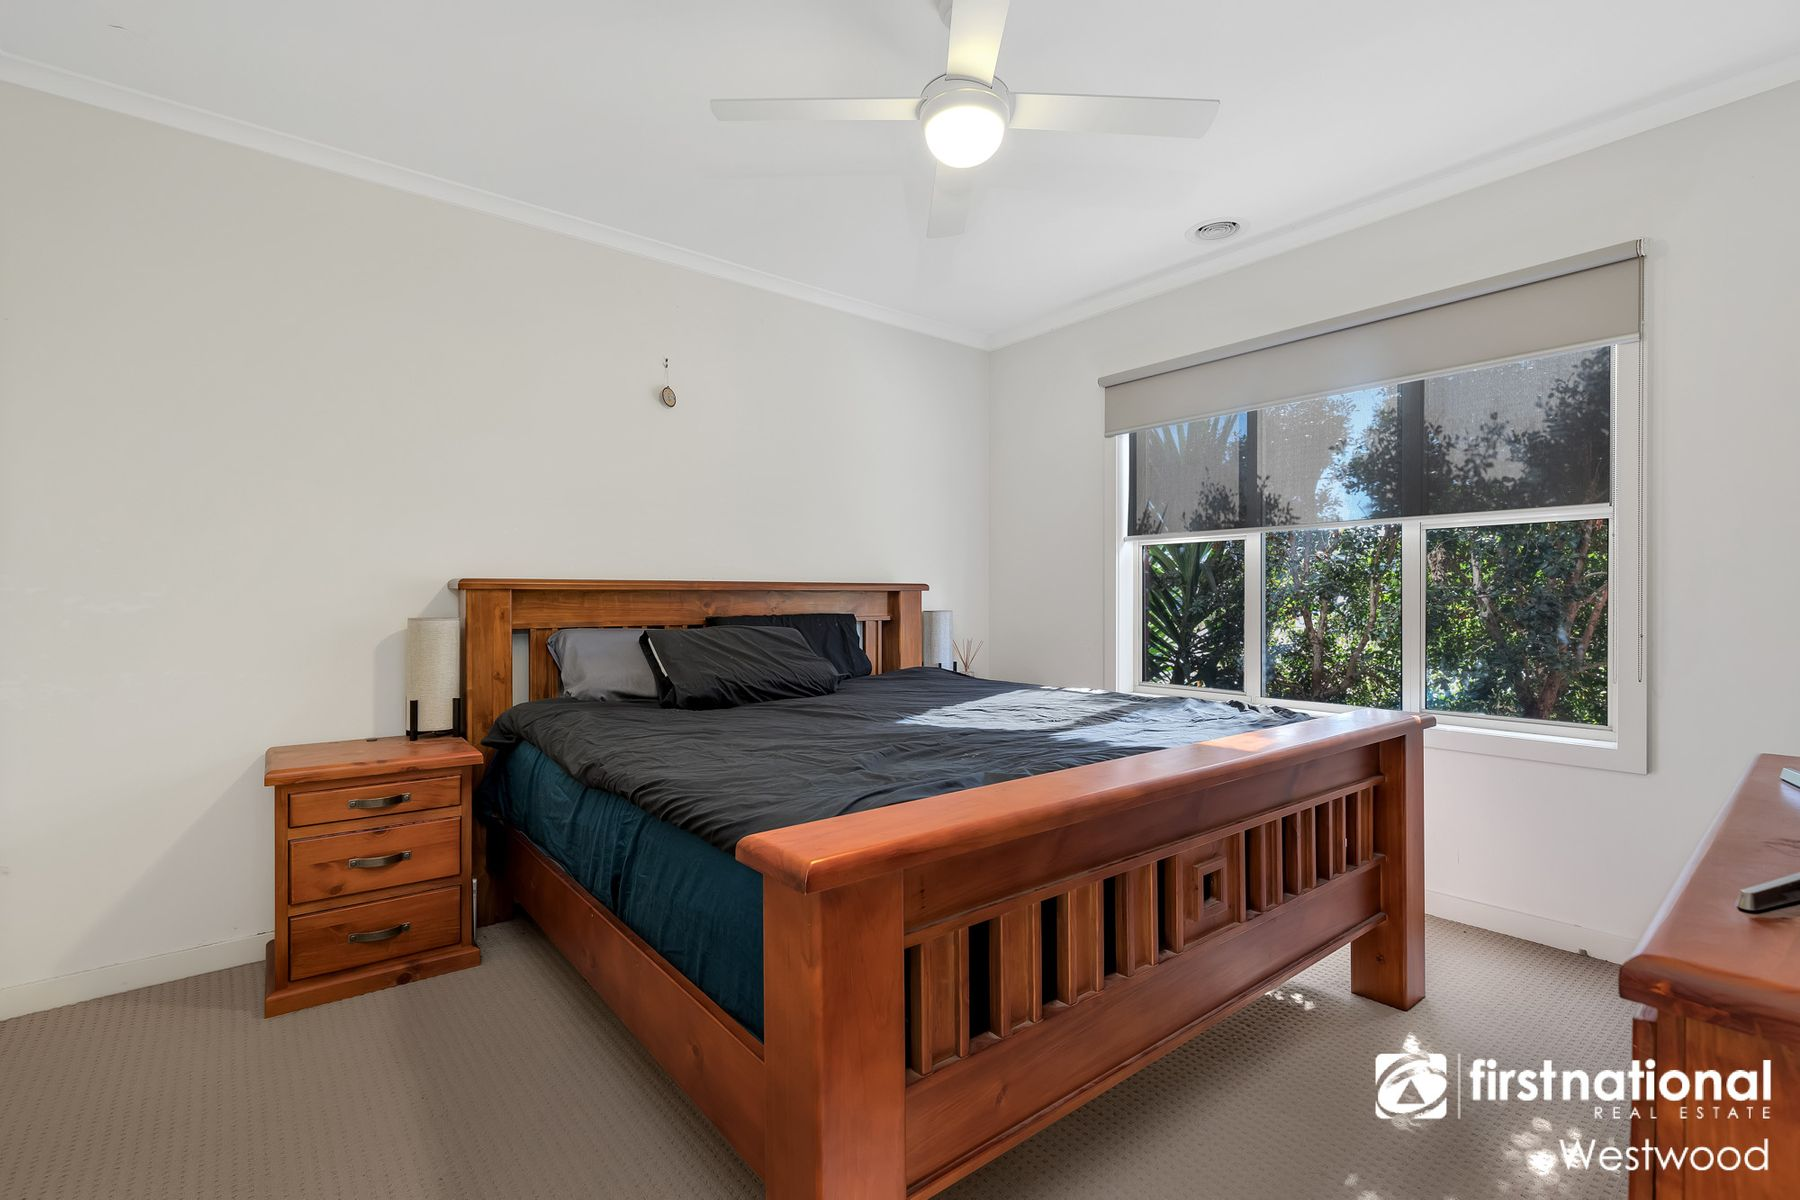 1/11 Filippin Court, Werribee, VIC 3030